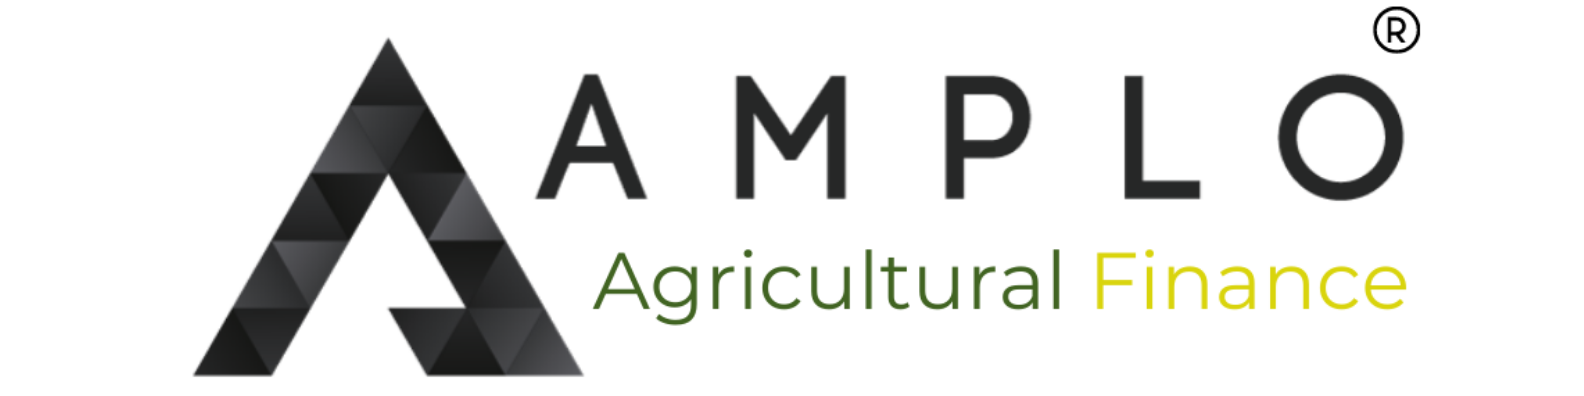 Amplo Agricultural Finance